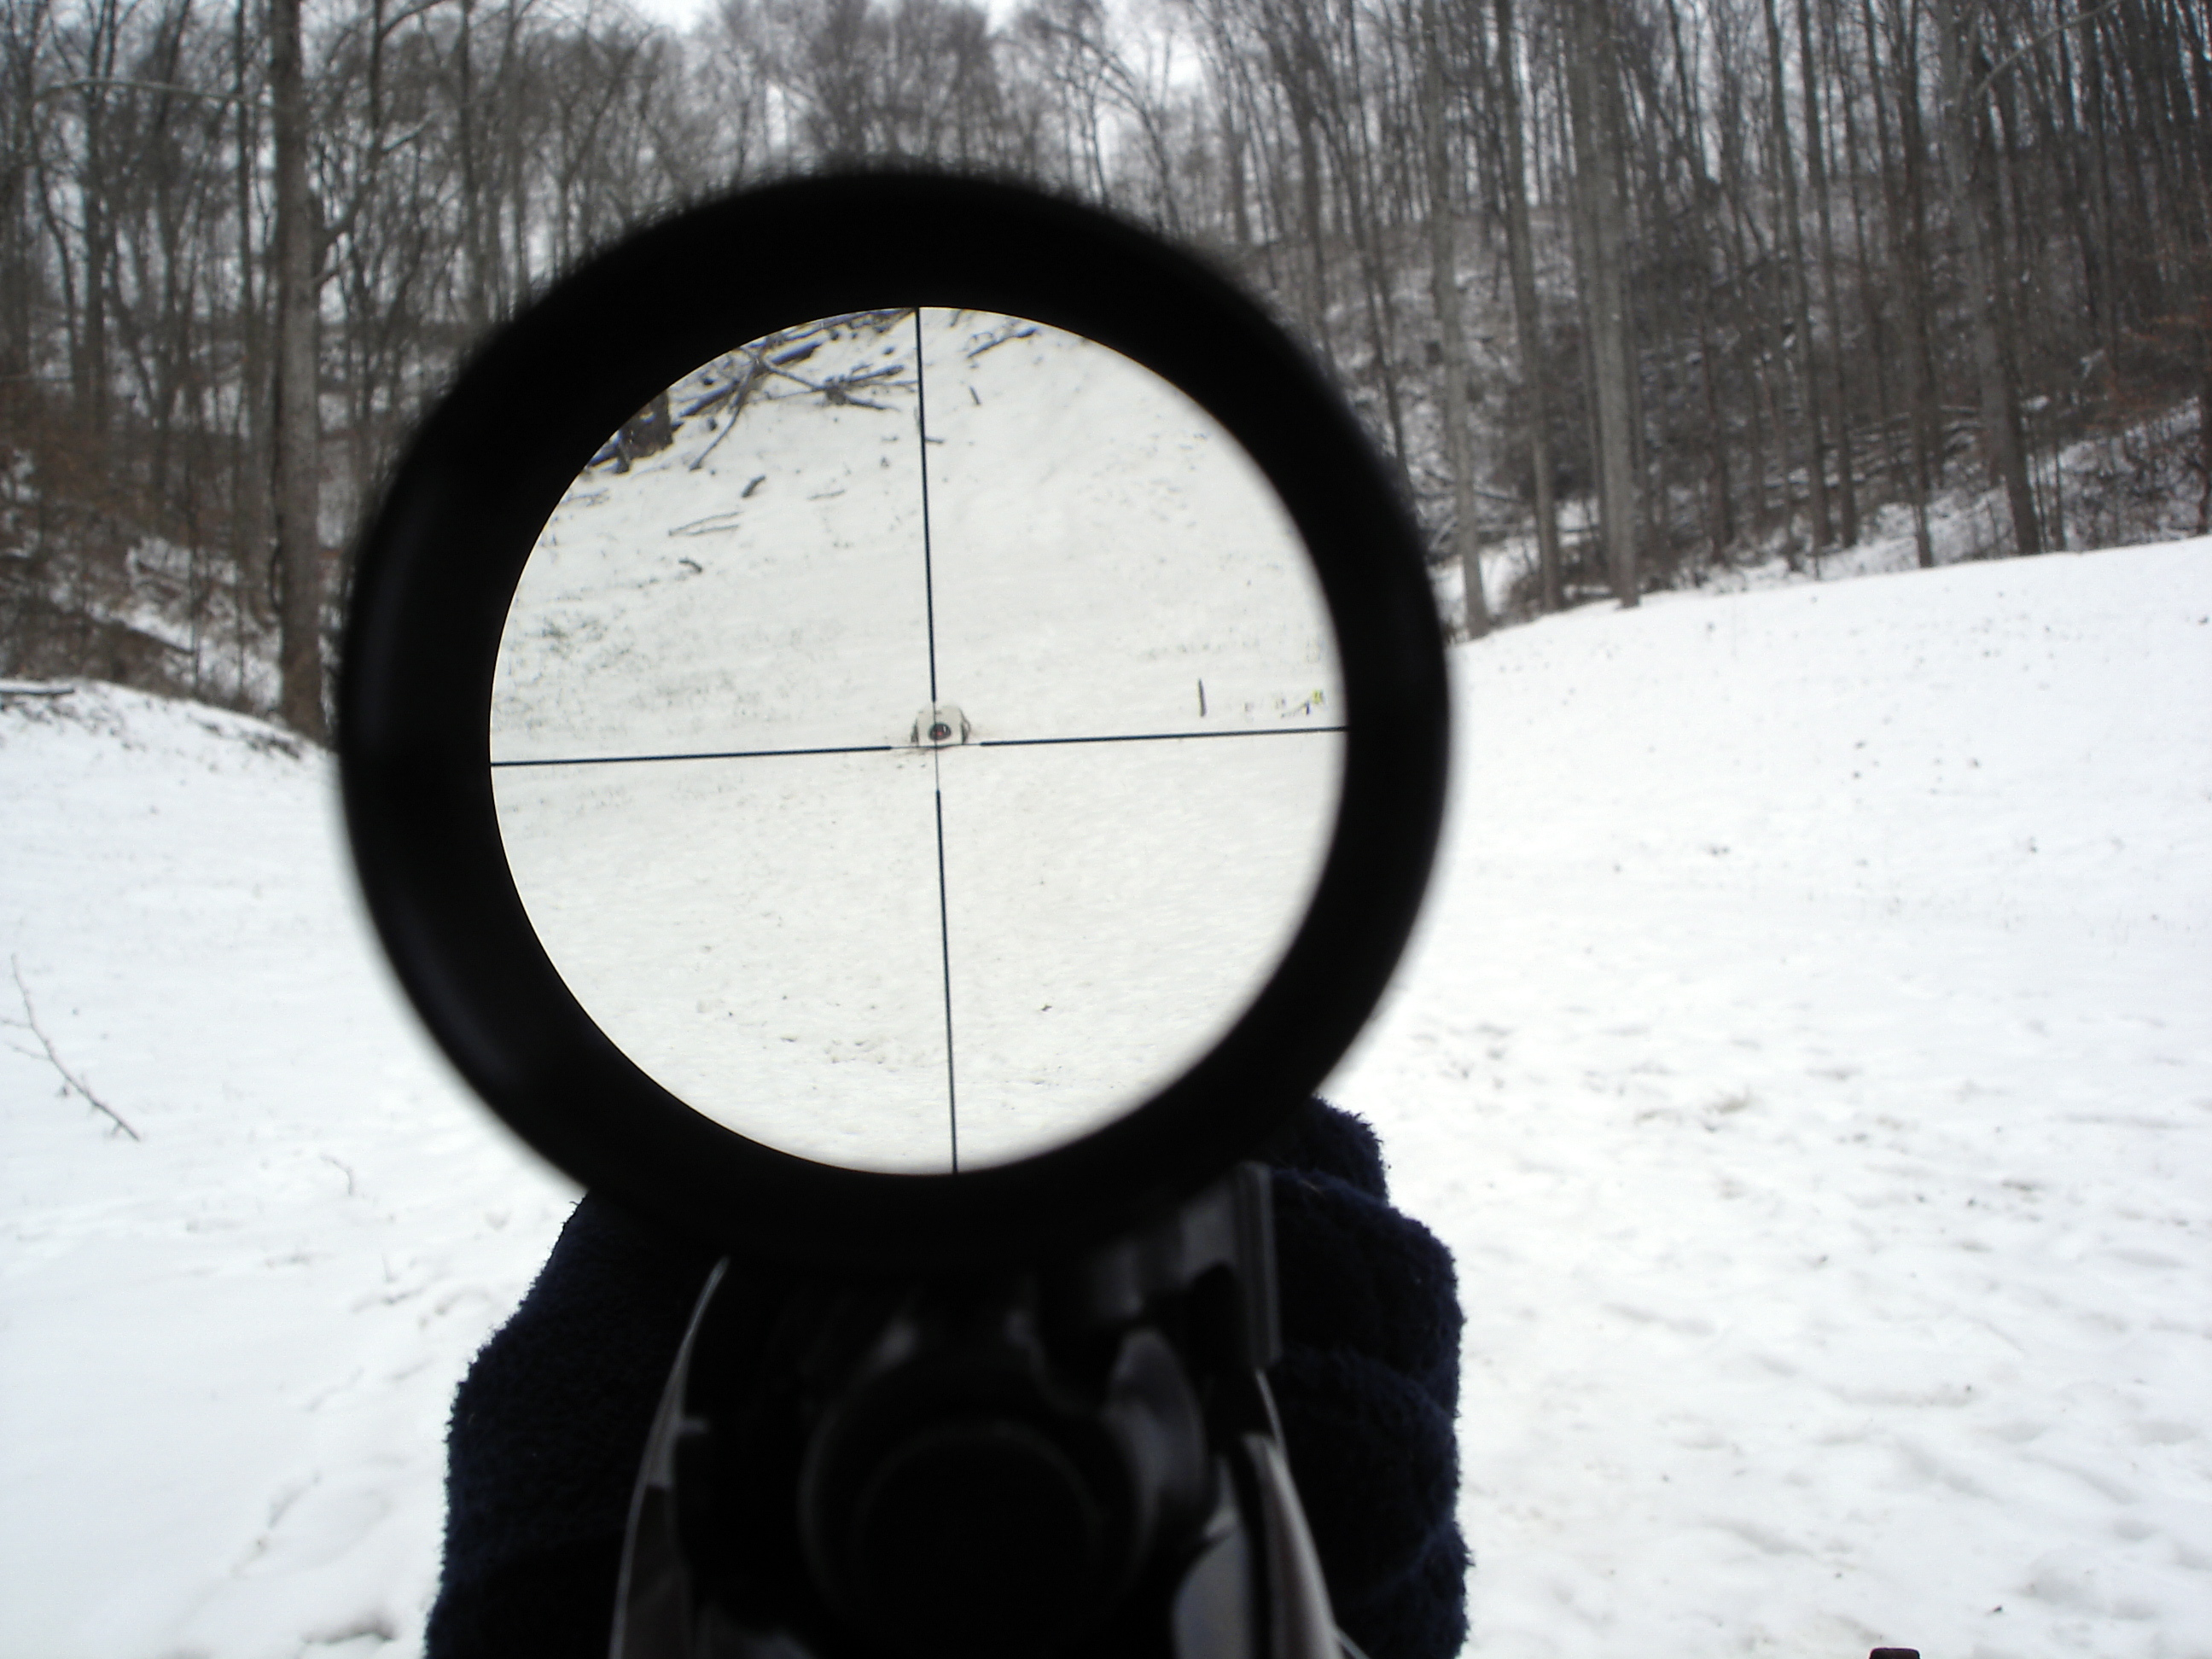 Rifle Scope View